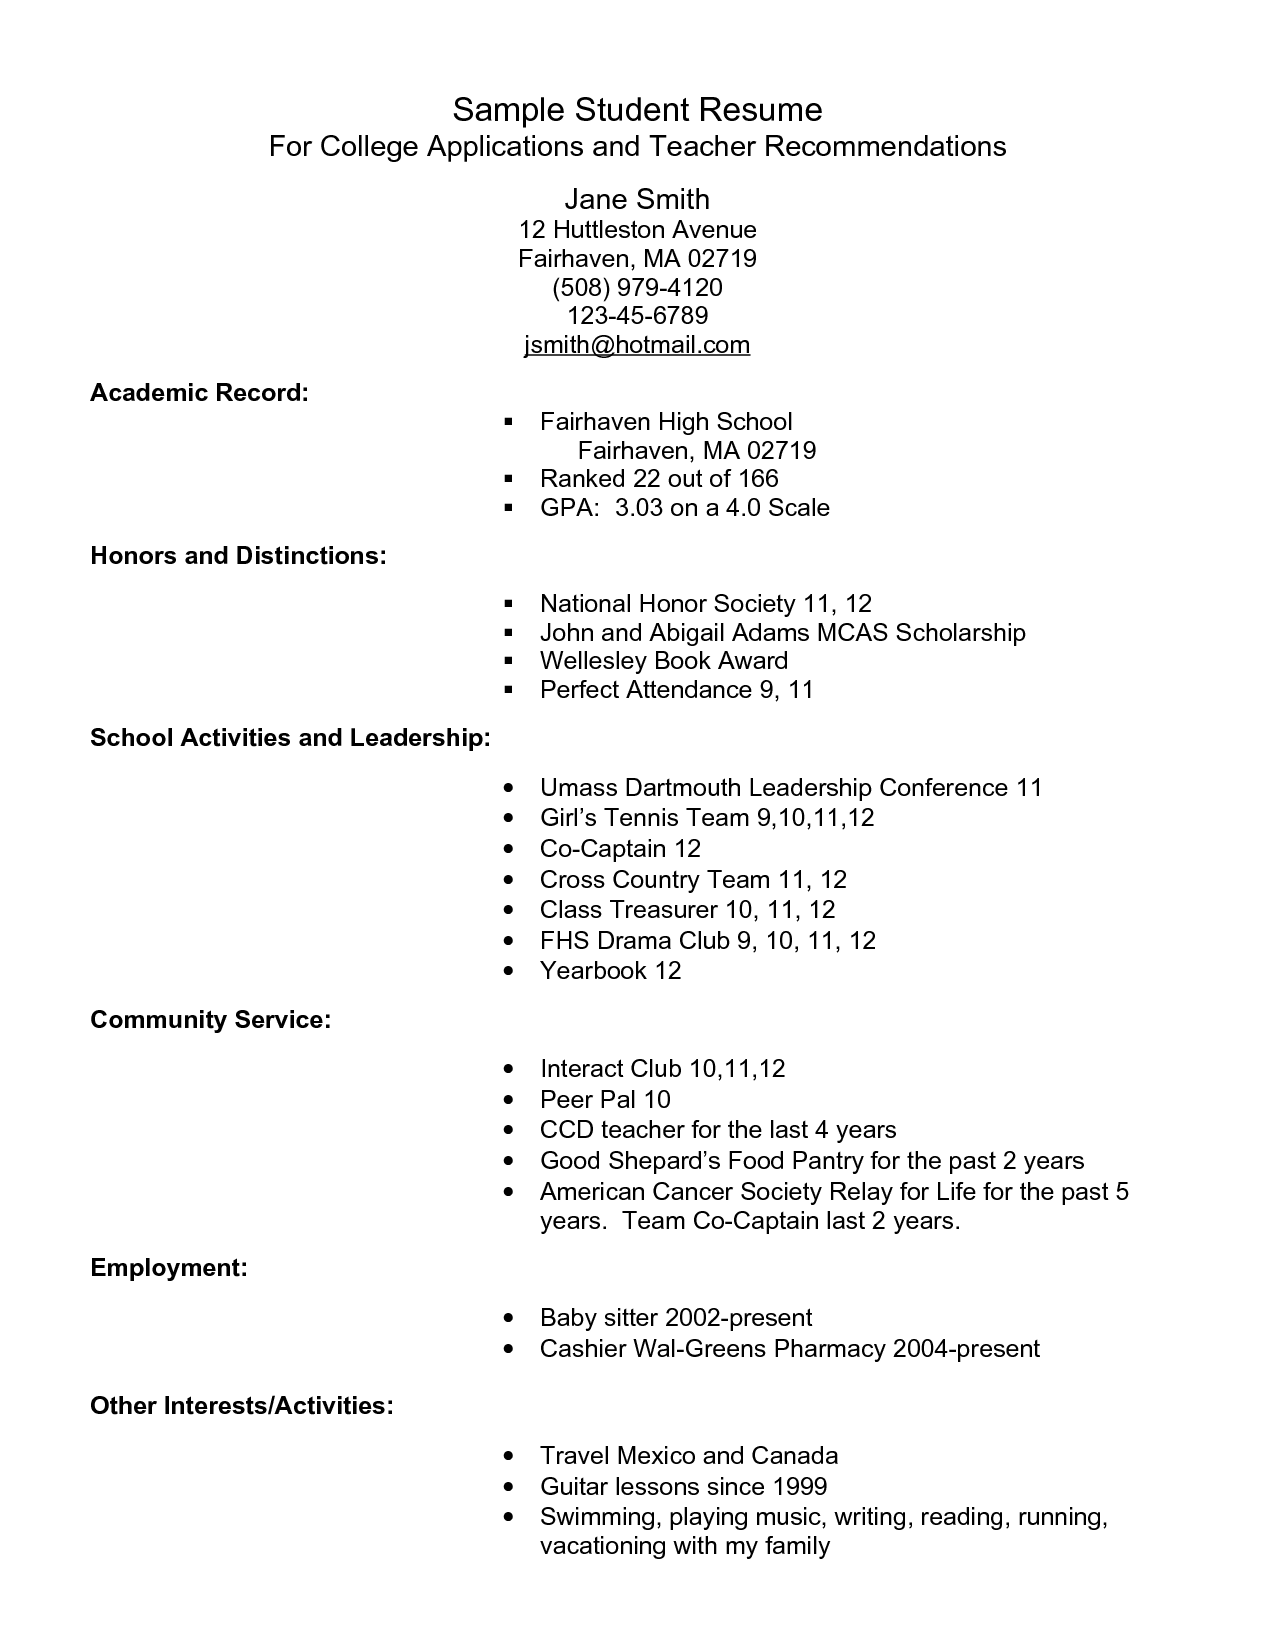 Example resume for high school students for college applications example resume for high school students for college applications sample student resume pdf by smapdi59 altavistaventures